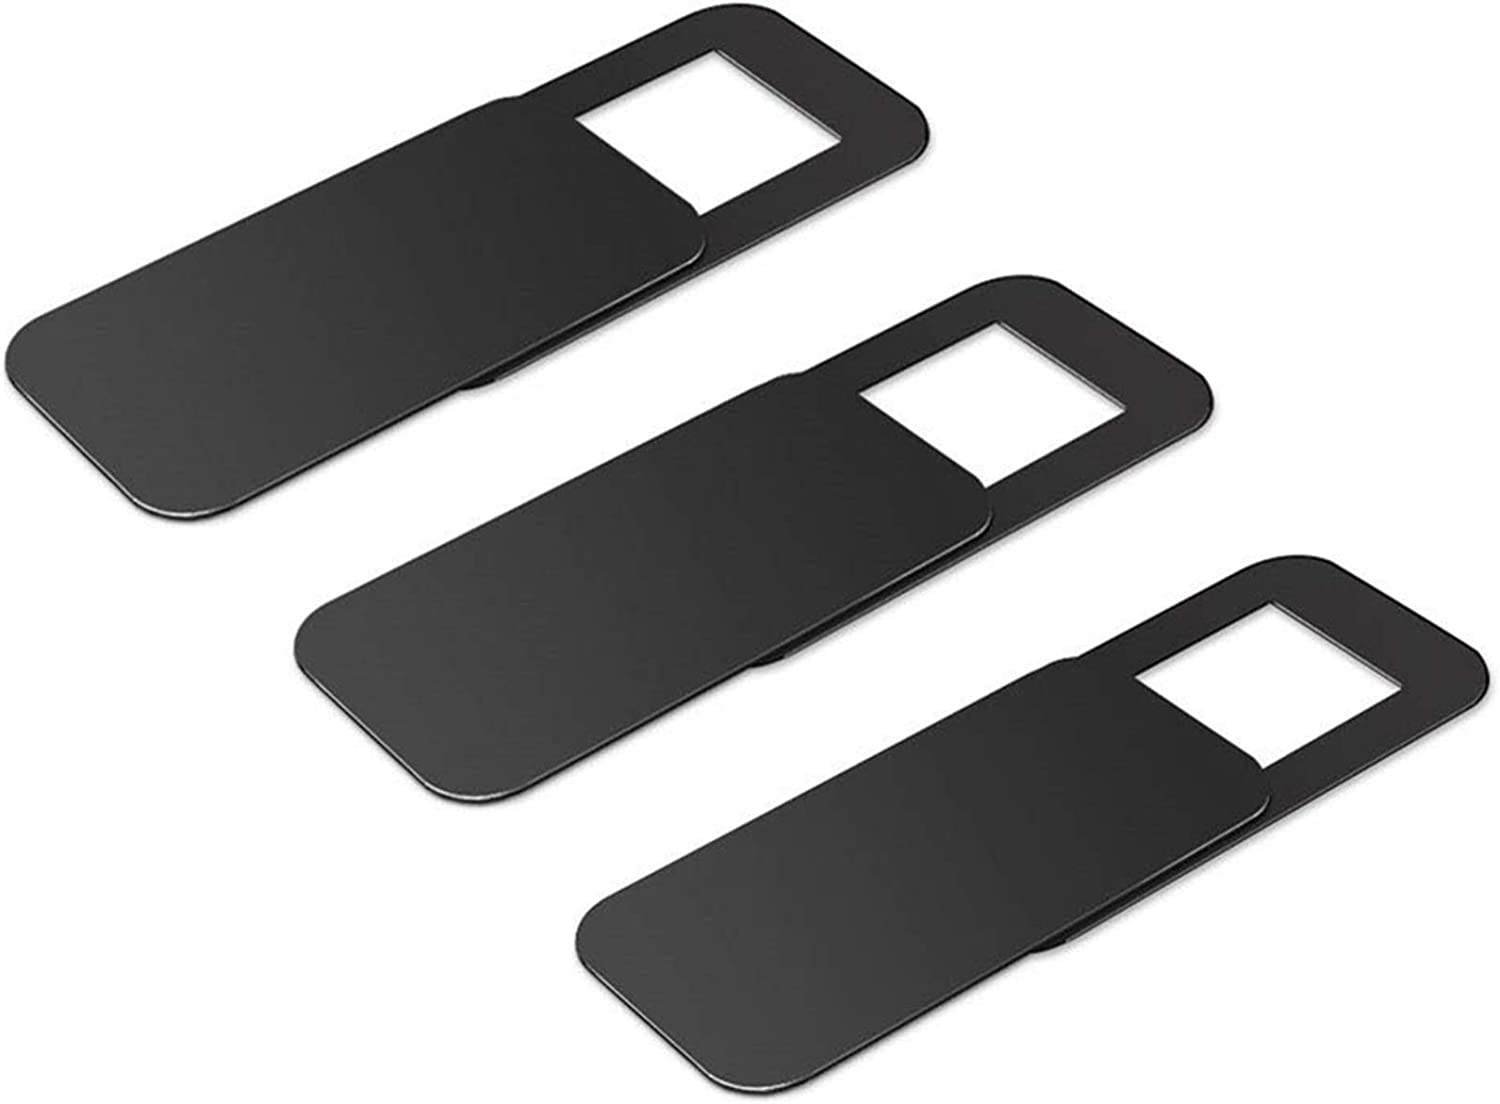 Webcam Cover, Ubitree Webcam Cover Slide Laptop Camera Cover Slide for iPhone Android Laptops Mac Books PCs Tablets SmartphonesCovers Your Camera for Privacy Security Black 3 Pack